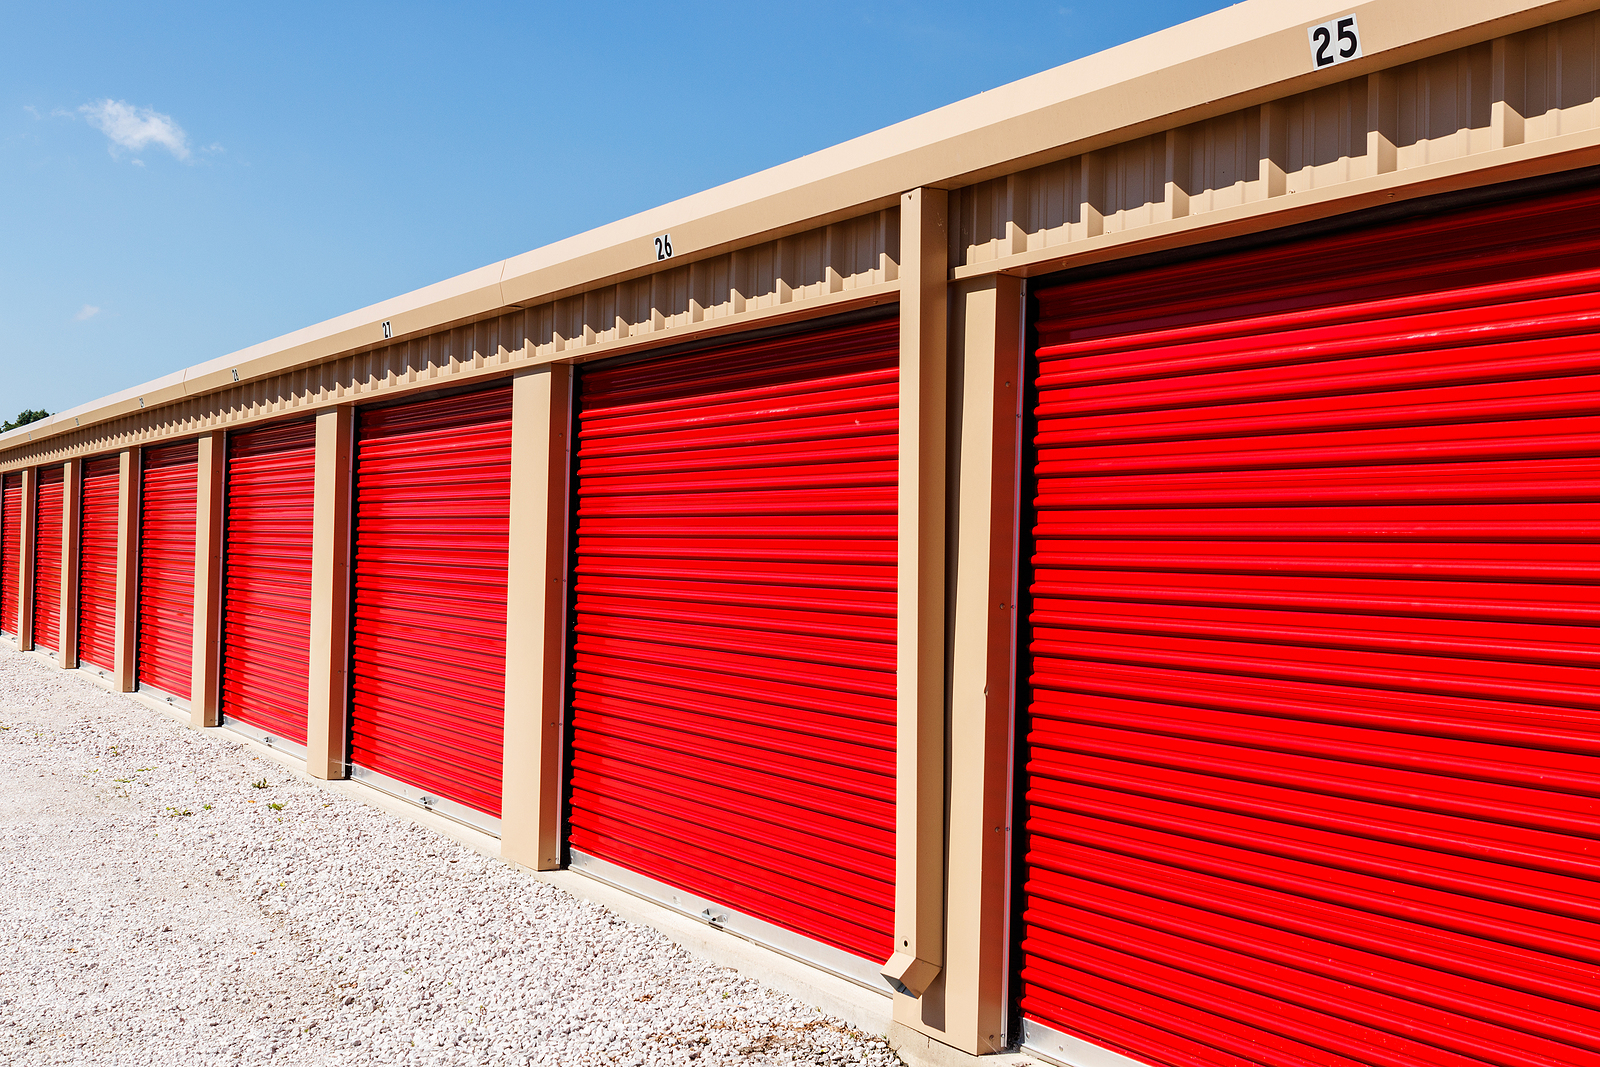 Numbered mini storage in Wyong